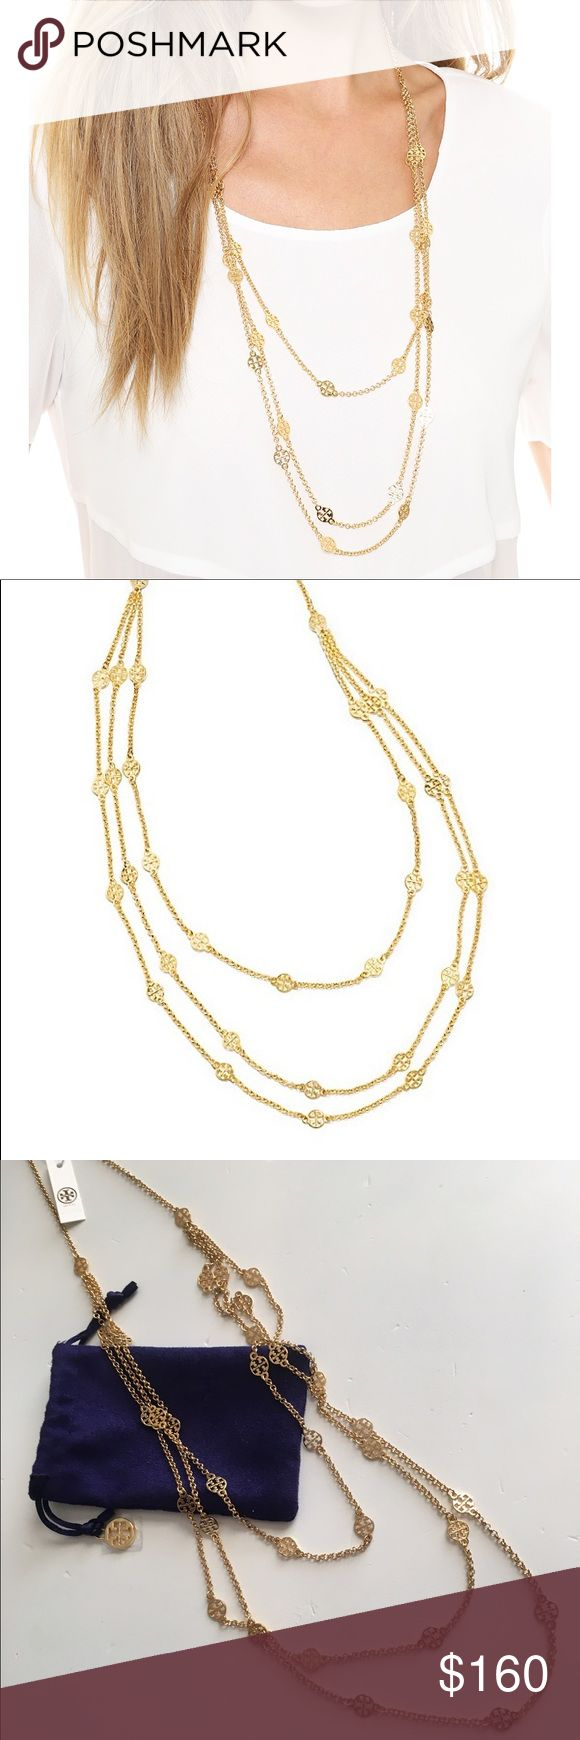 """🆕 Tory Burch Multi-Strand Logo Necklace Gold NWT Get linked in: Multi-Strand Logo Necklace features tiny signature 'T' charms on layers of polished chains. Great with casual and evening looks alike, it brings a little shine to your everyday. STYLE NUMBER11145978                          Length: 35.86"""" (90 cm) Longest strand drop: 17.93"""" (45.0 cm) Middle strand drop: 16.33"""" (41.0 cm) Shortest strand drop: 14.74"""" (37.0 cm) Lobster clasp closure   16k gold-plate brass (shiny gold) Tory Burch…"""